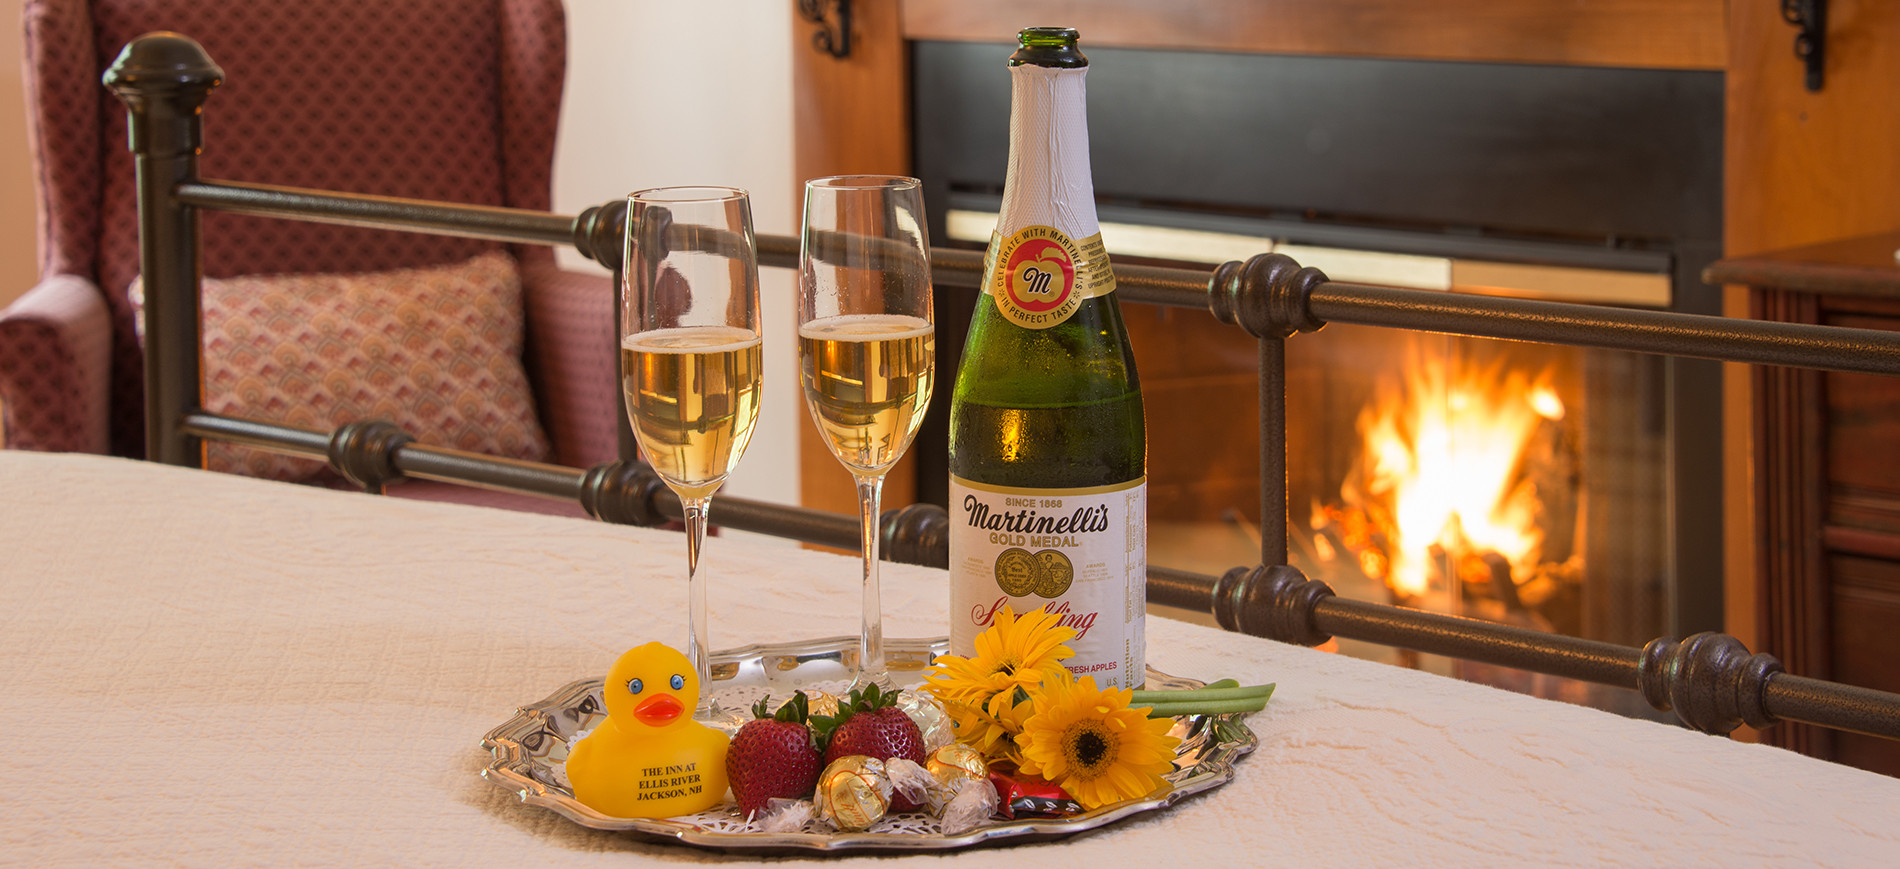 Glasses & bottle of cider on silver tray with rubber duck, strawberries, chocolates. Tray on bronze bed with fireplace behind